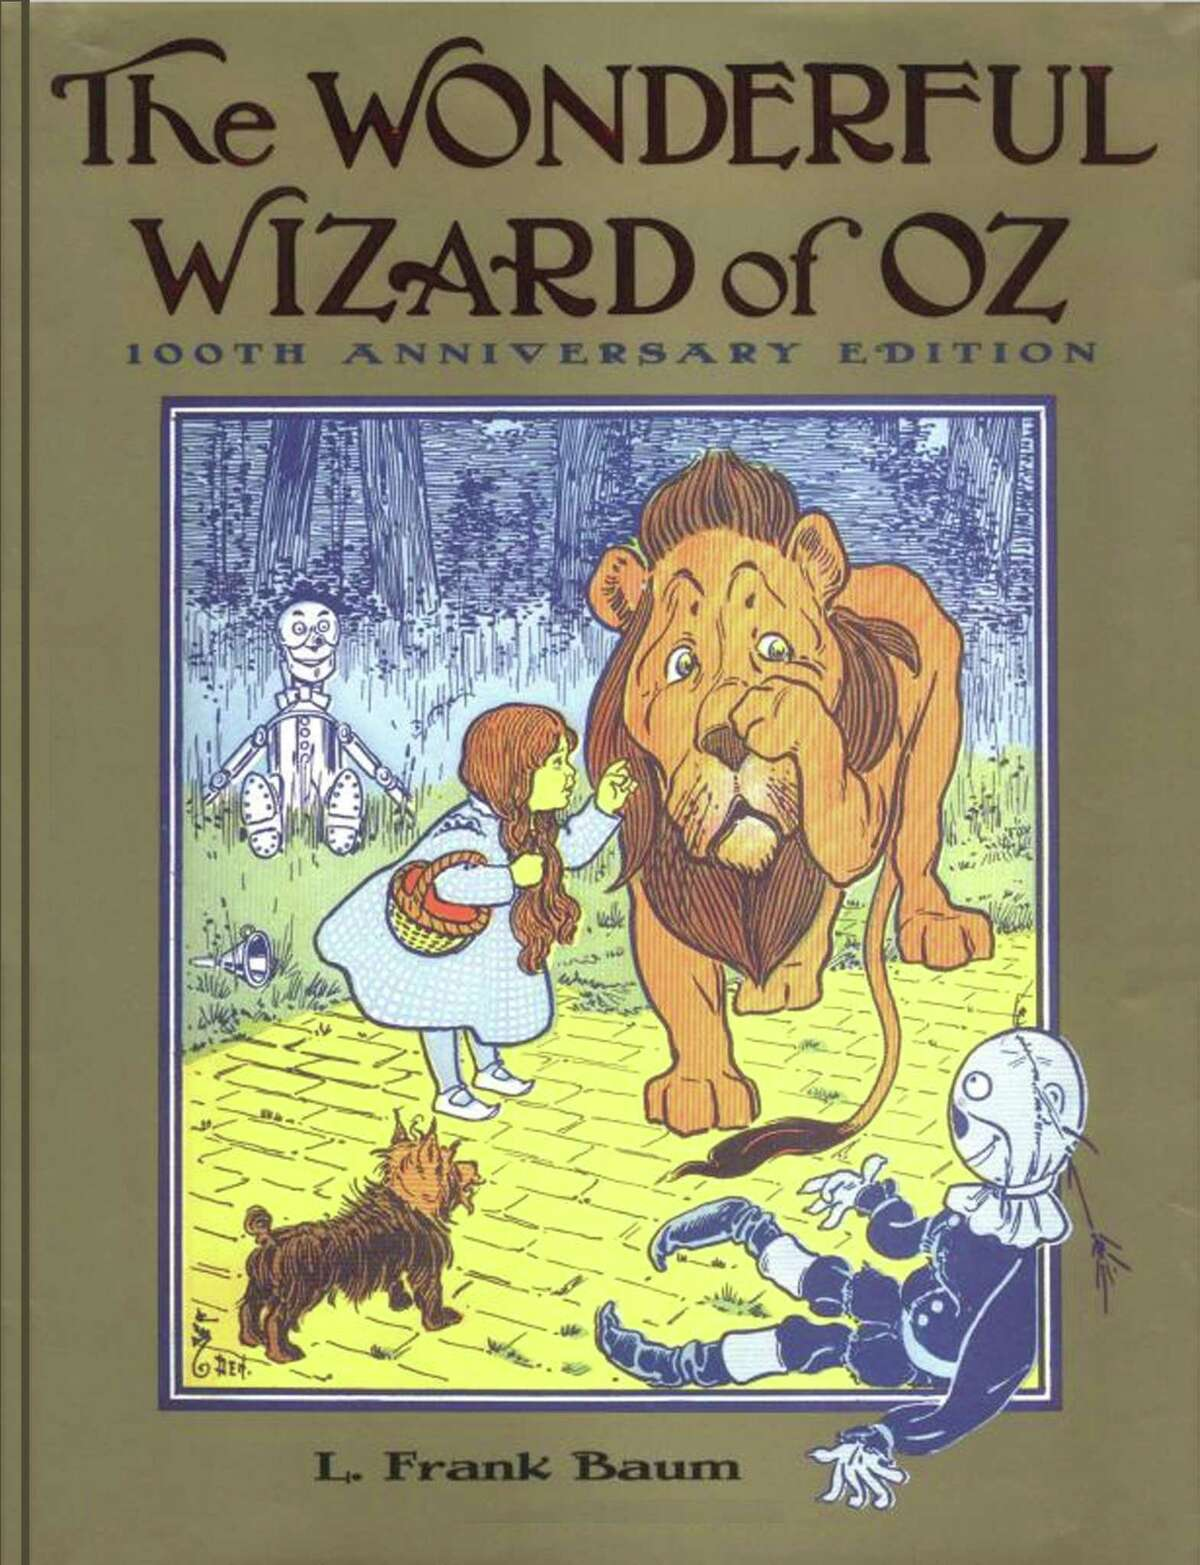 'The Wonderful Wizard of Oz,' the book chosen for a townwide reading program.